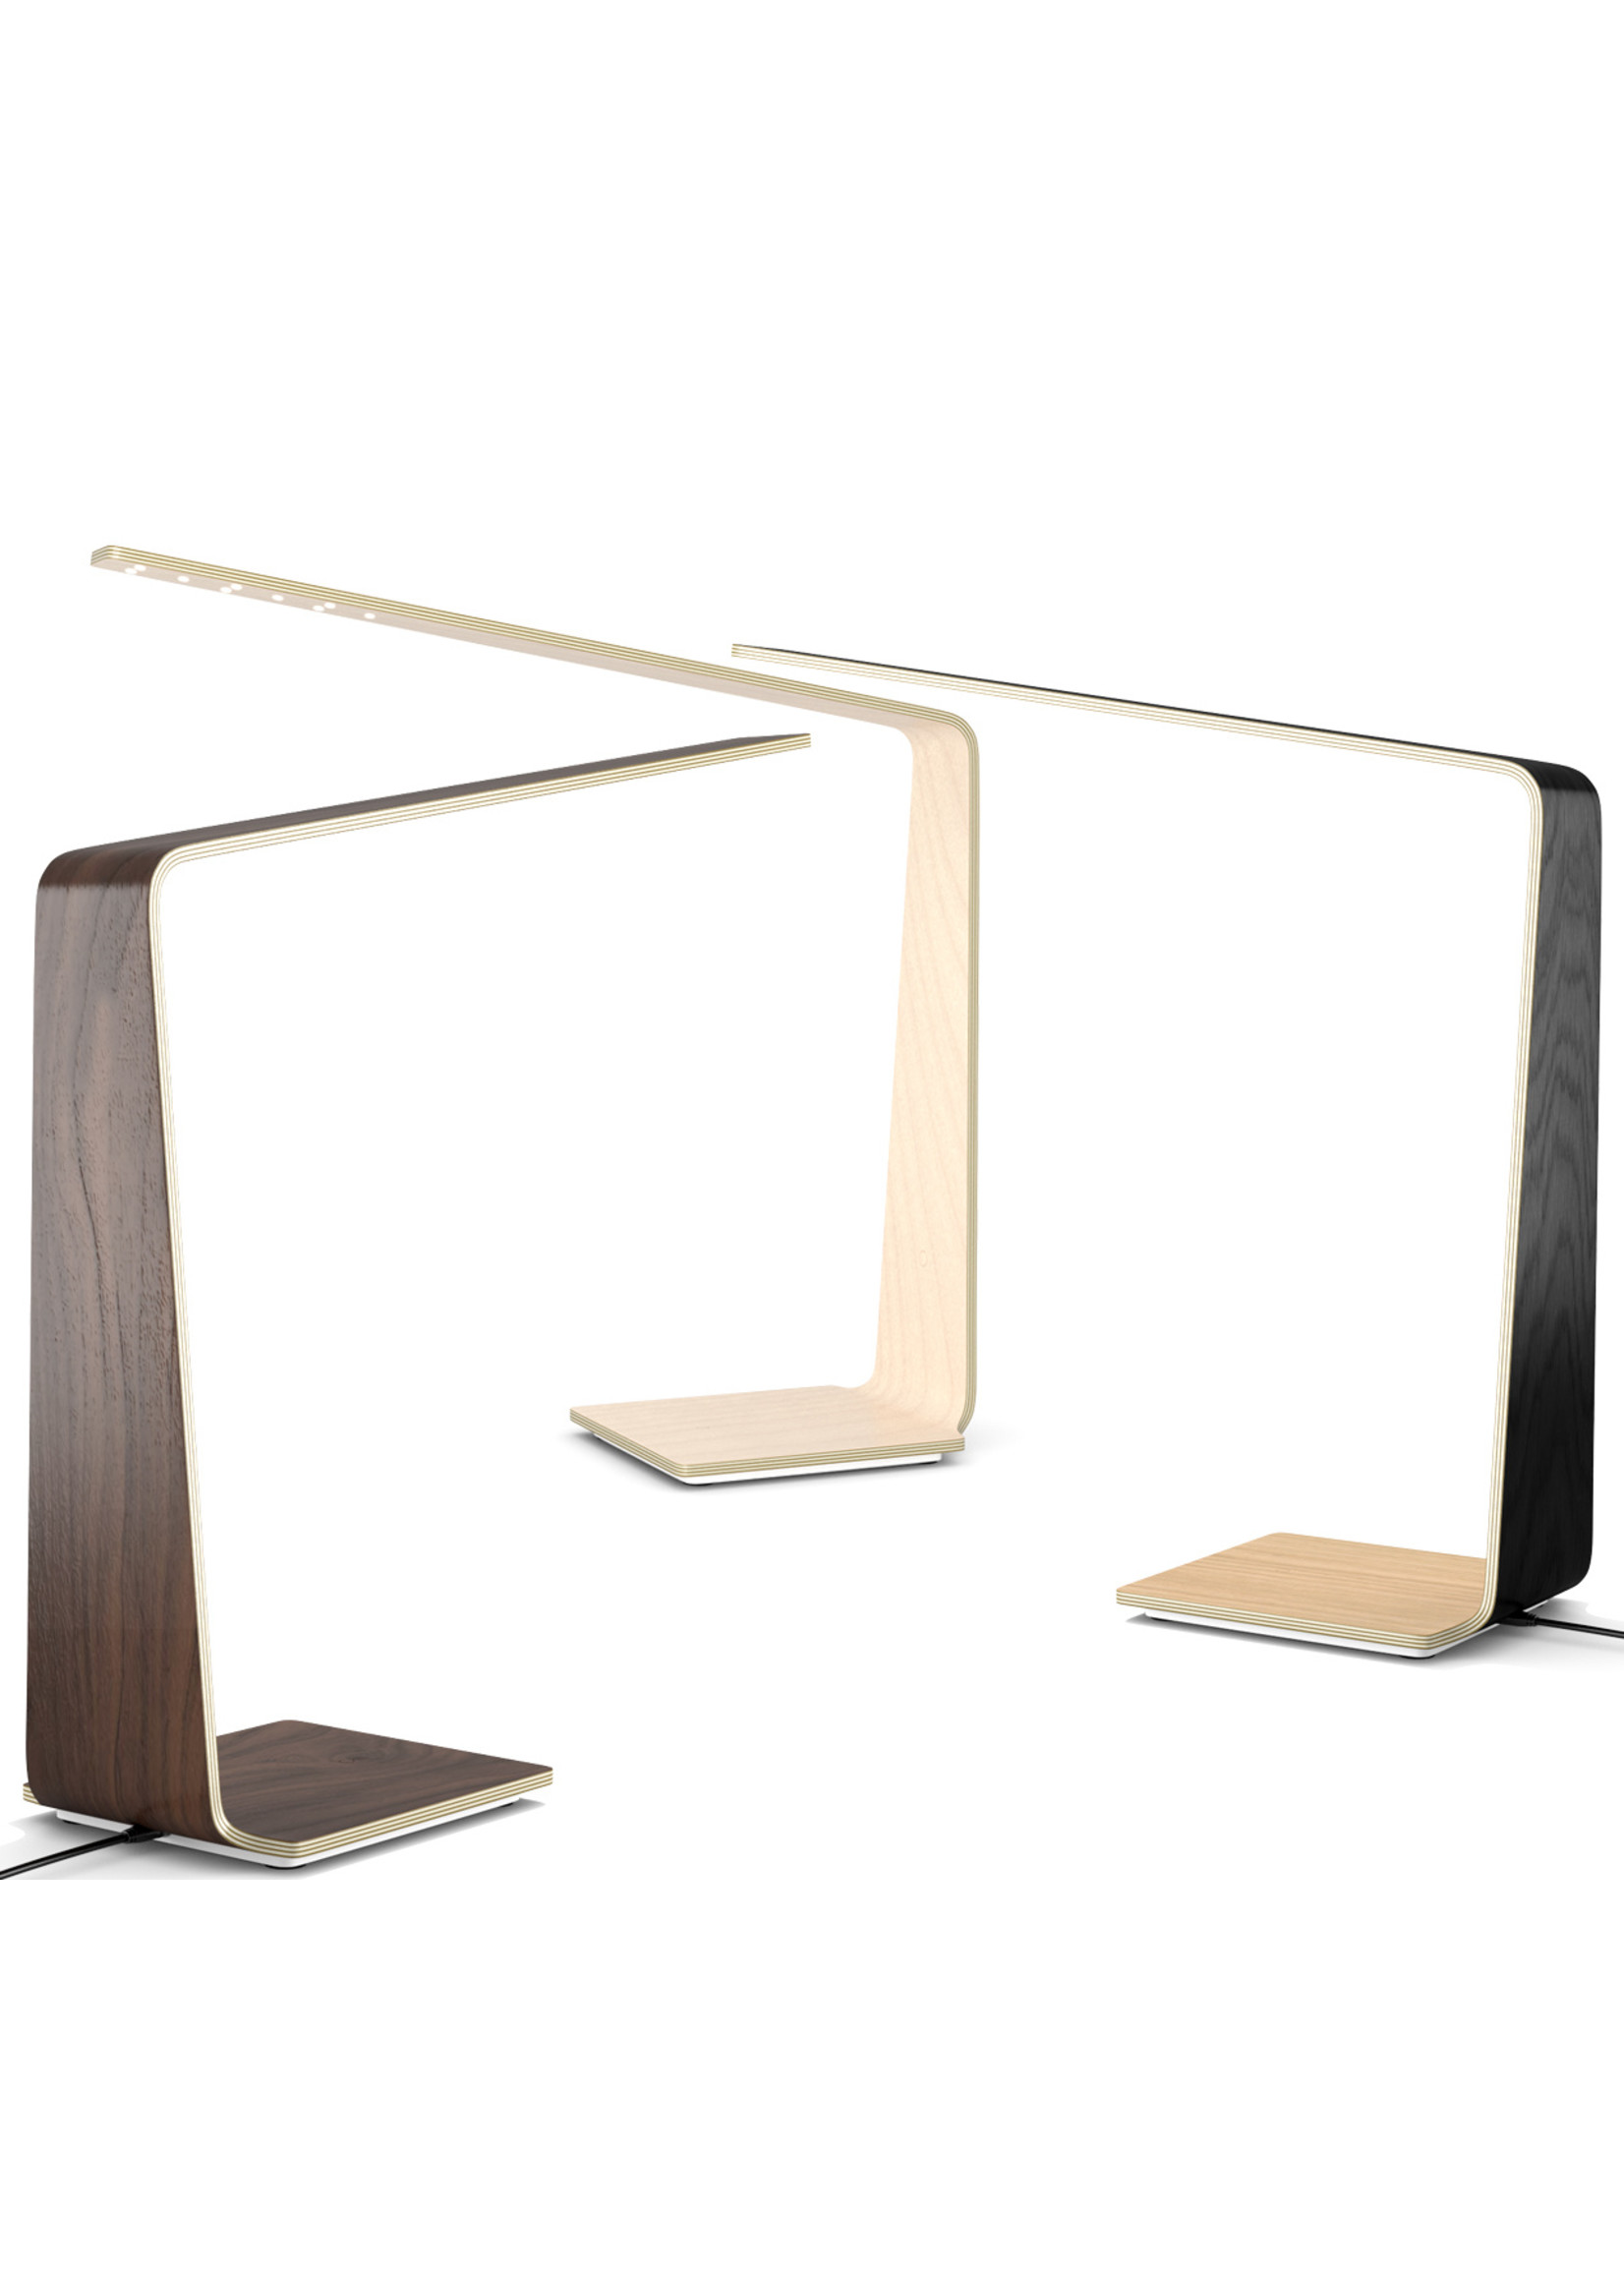 LED8 Table Lamp  - QI Wireless